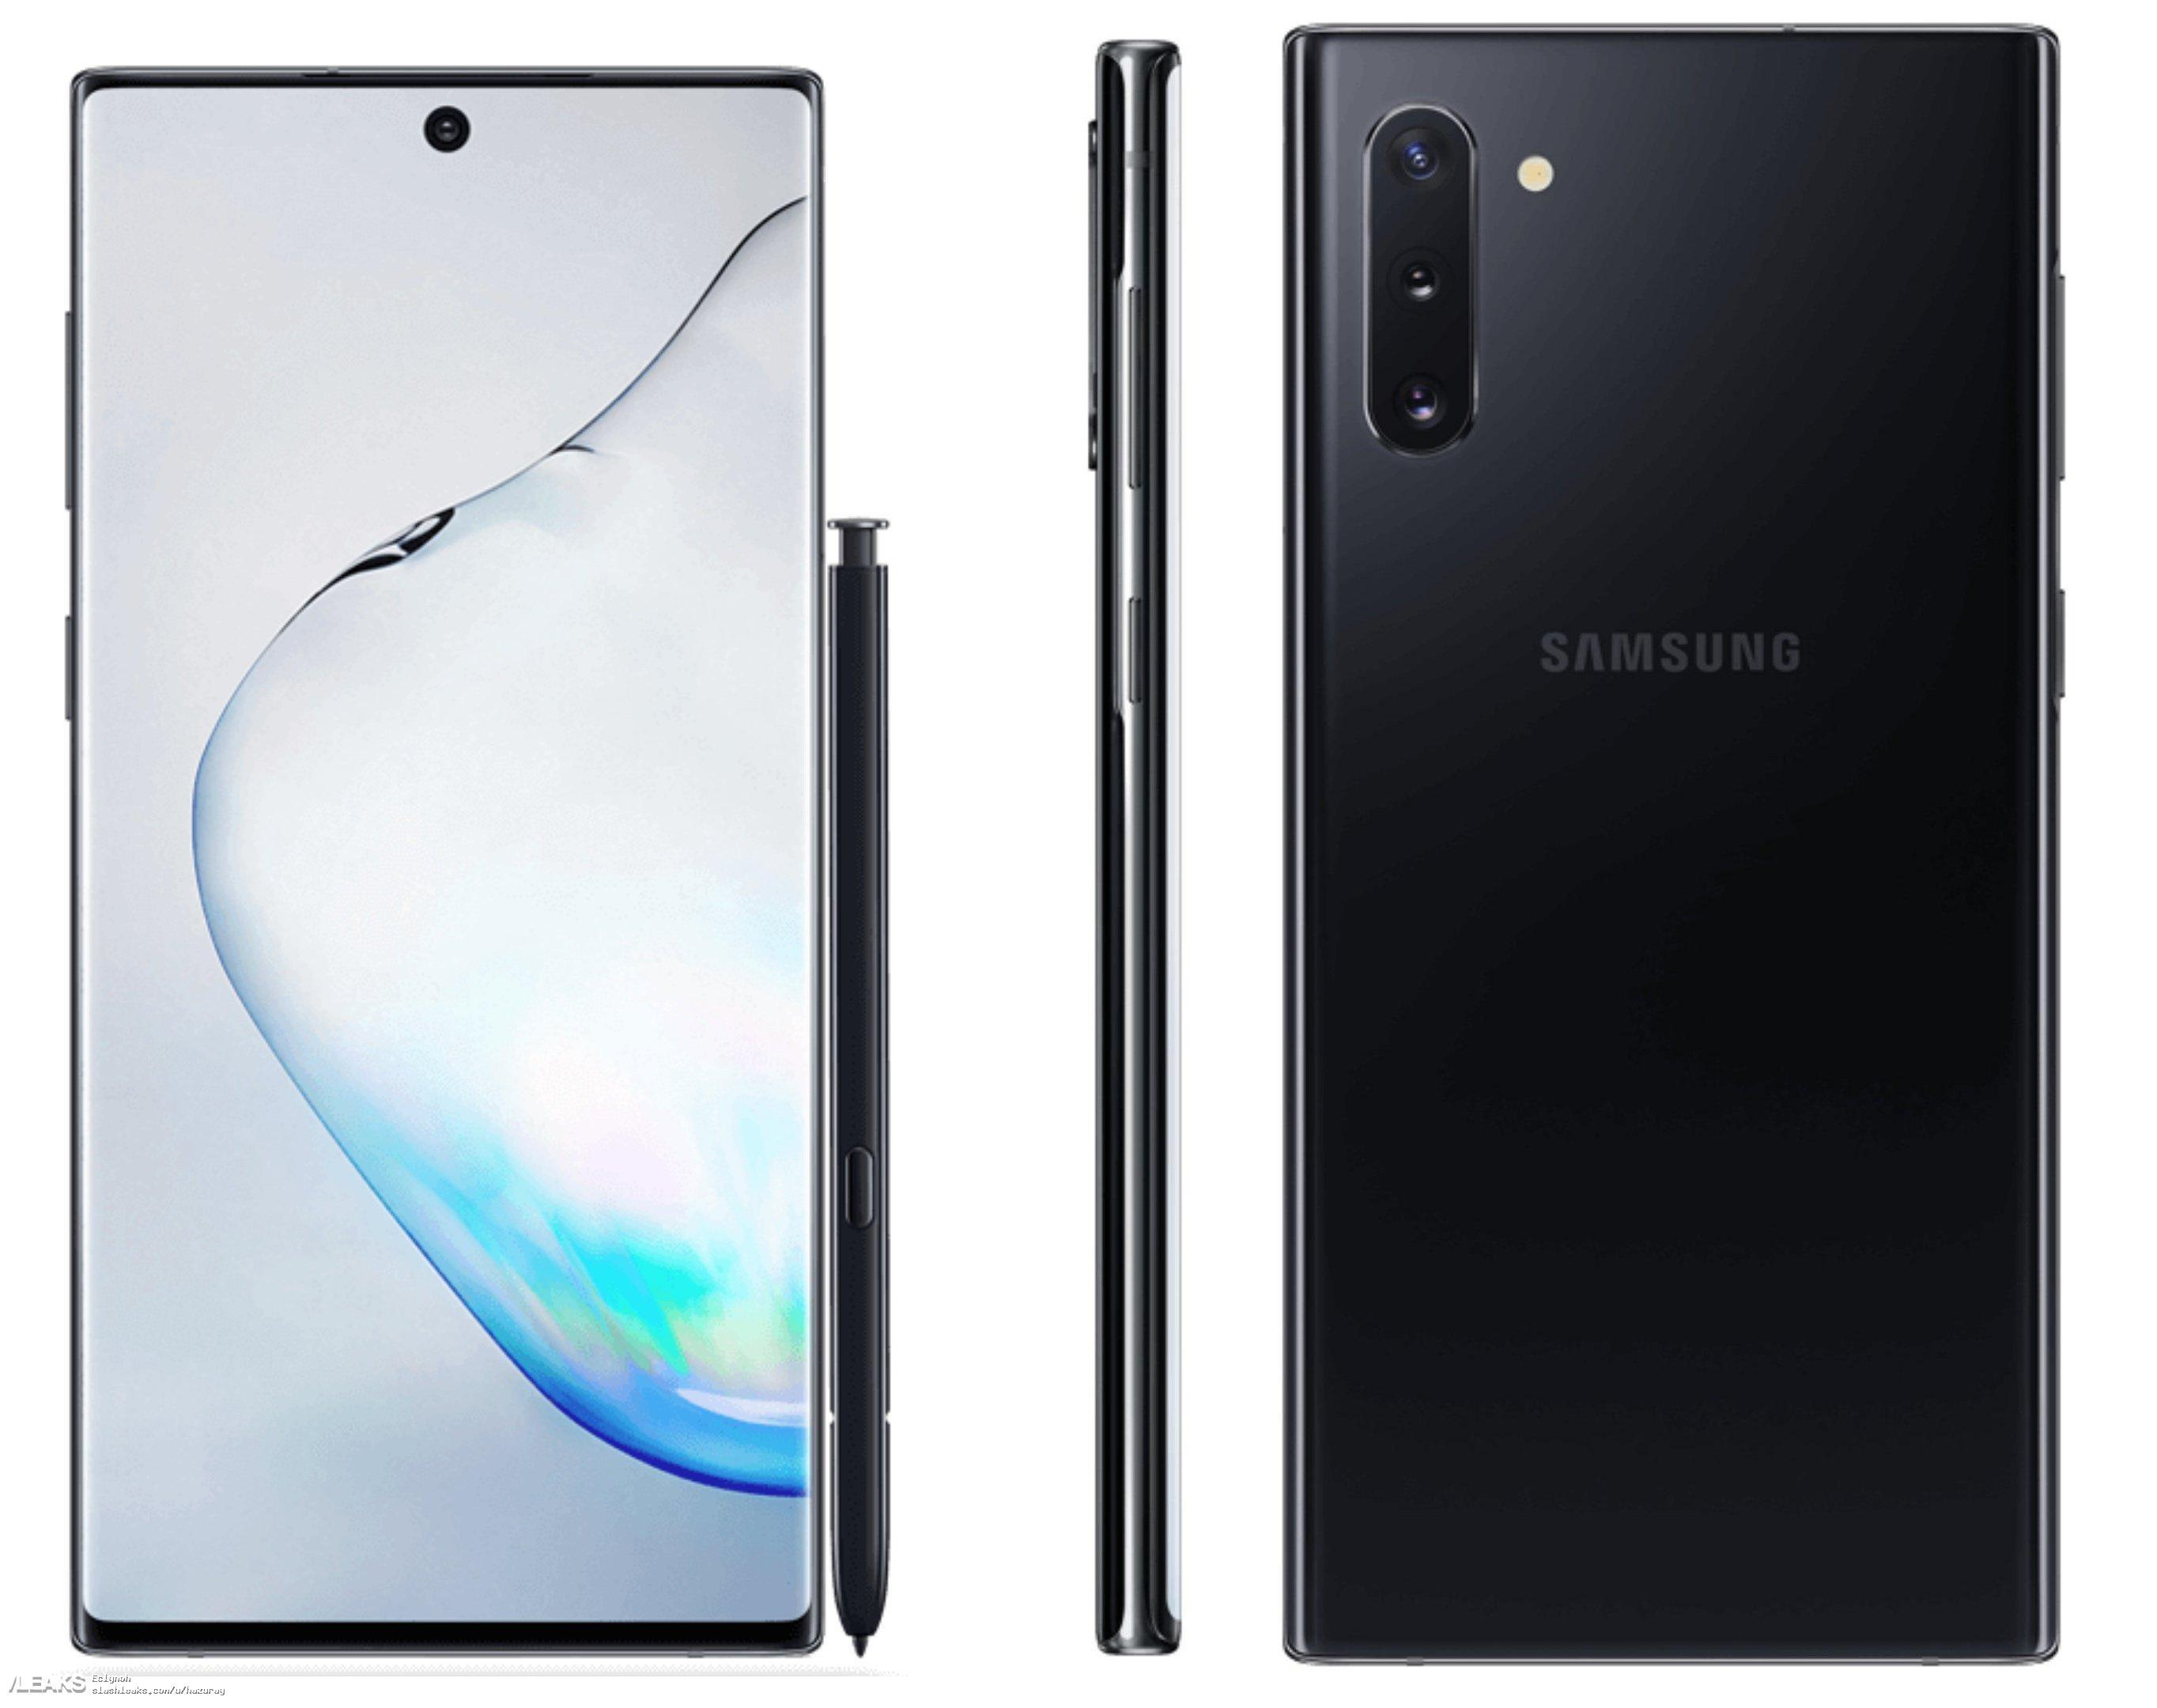 Note 10 press renders black